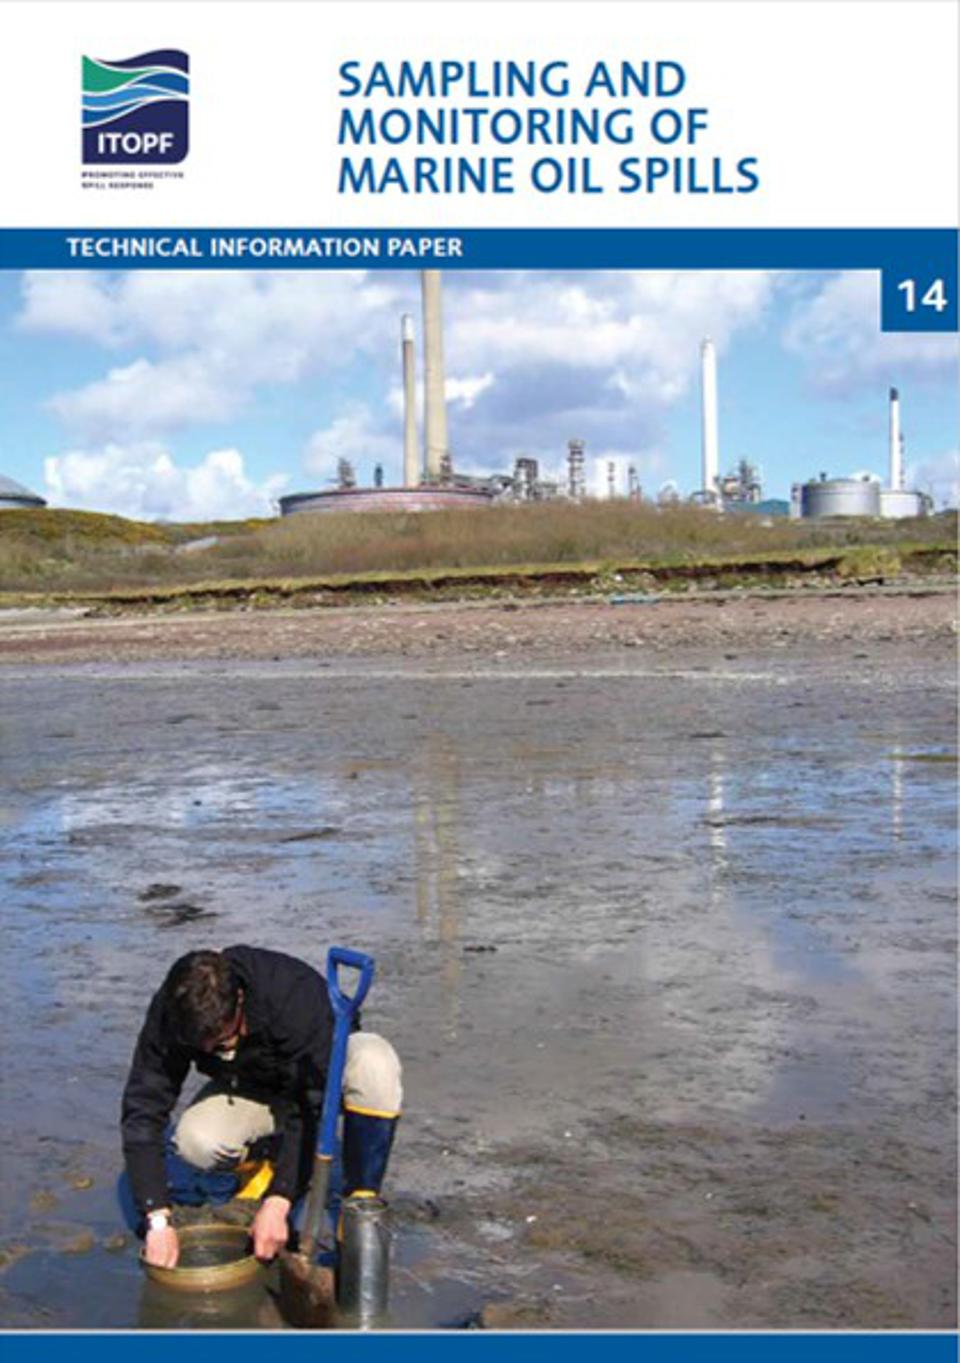 Cover of the famous TIP14 paper that gives all the details for how oil sampling should be conducted